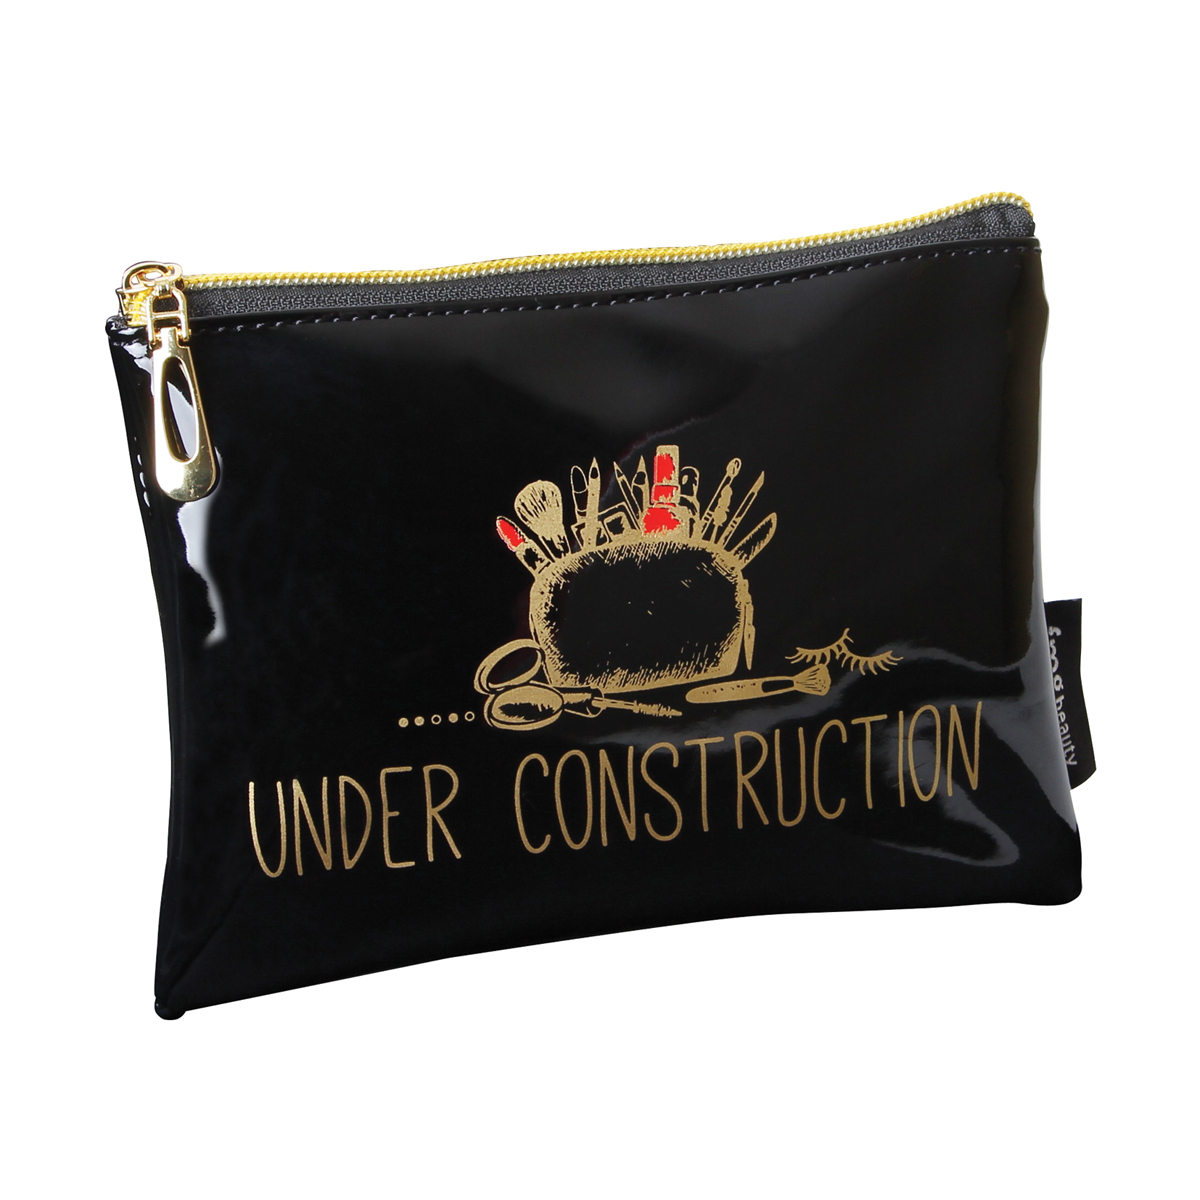 B2071 - Under Contruction' Makeup Bag - B2071